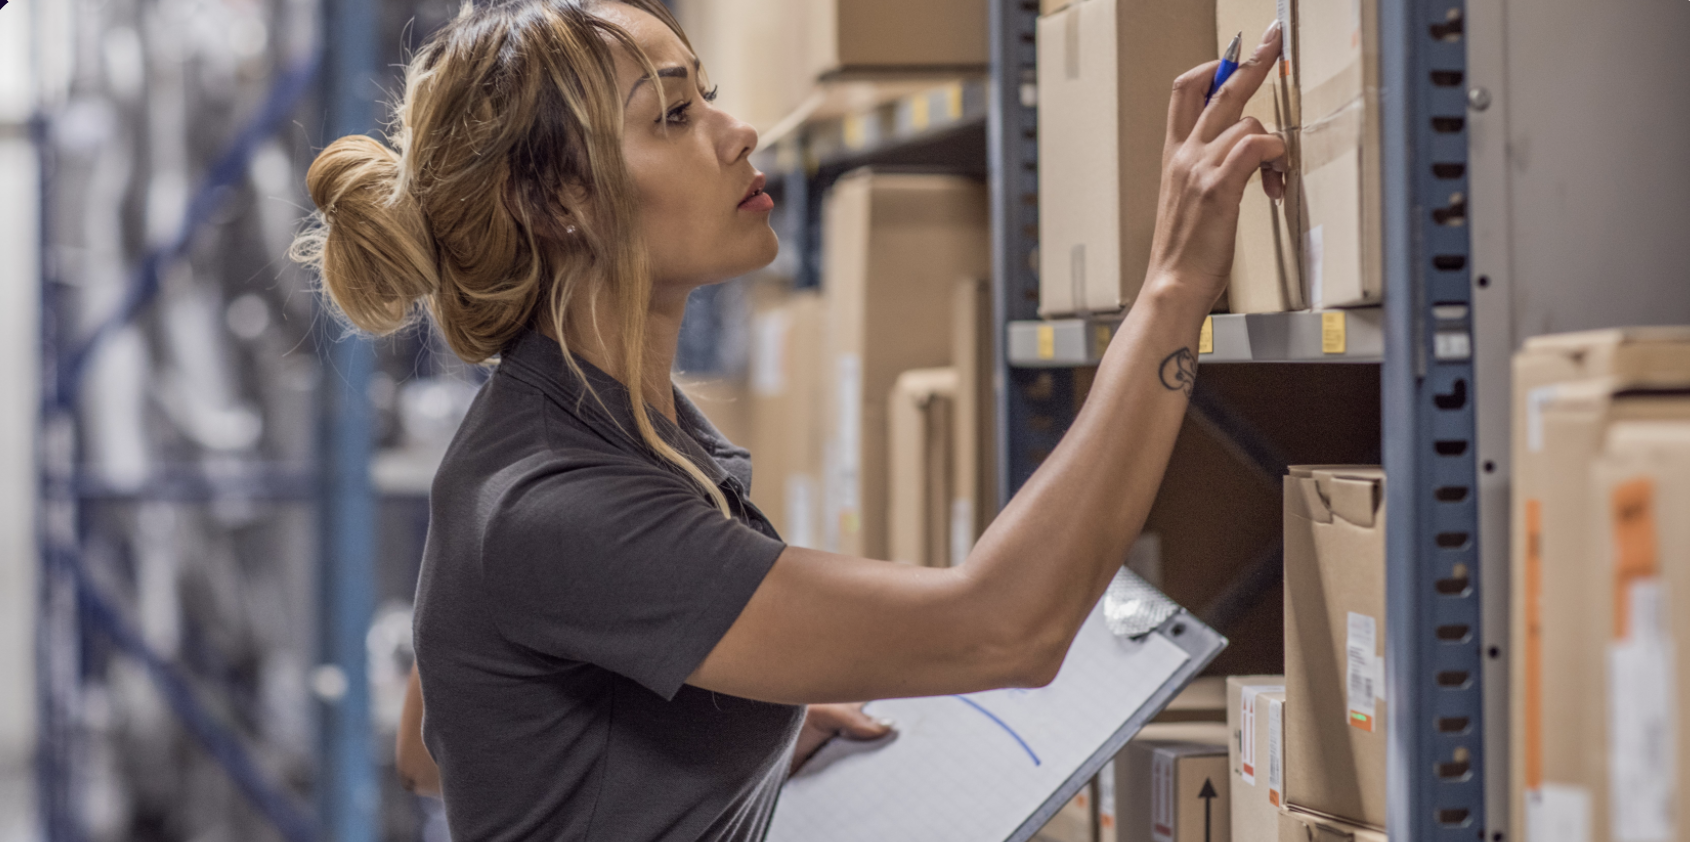 woman standing in warehouse checking a package